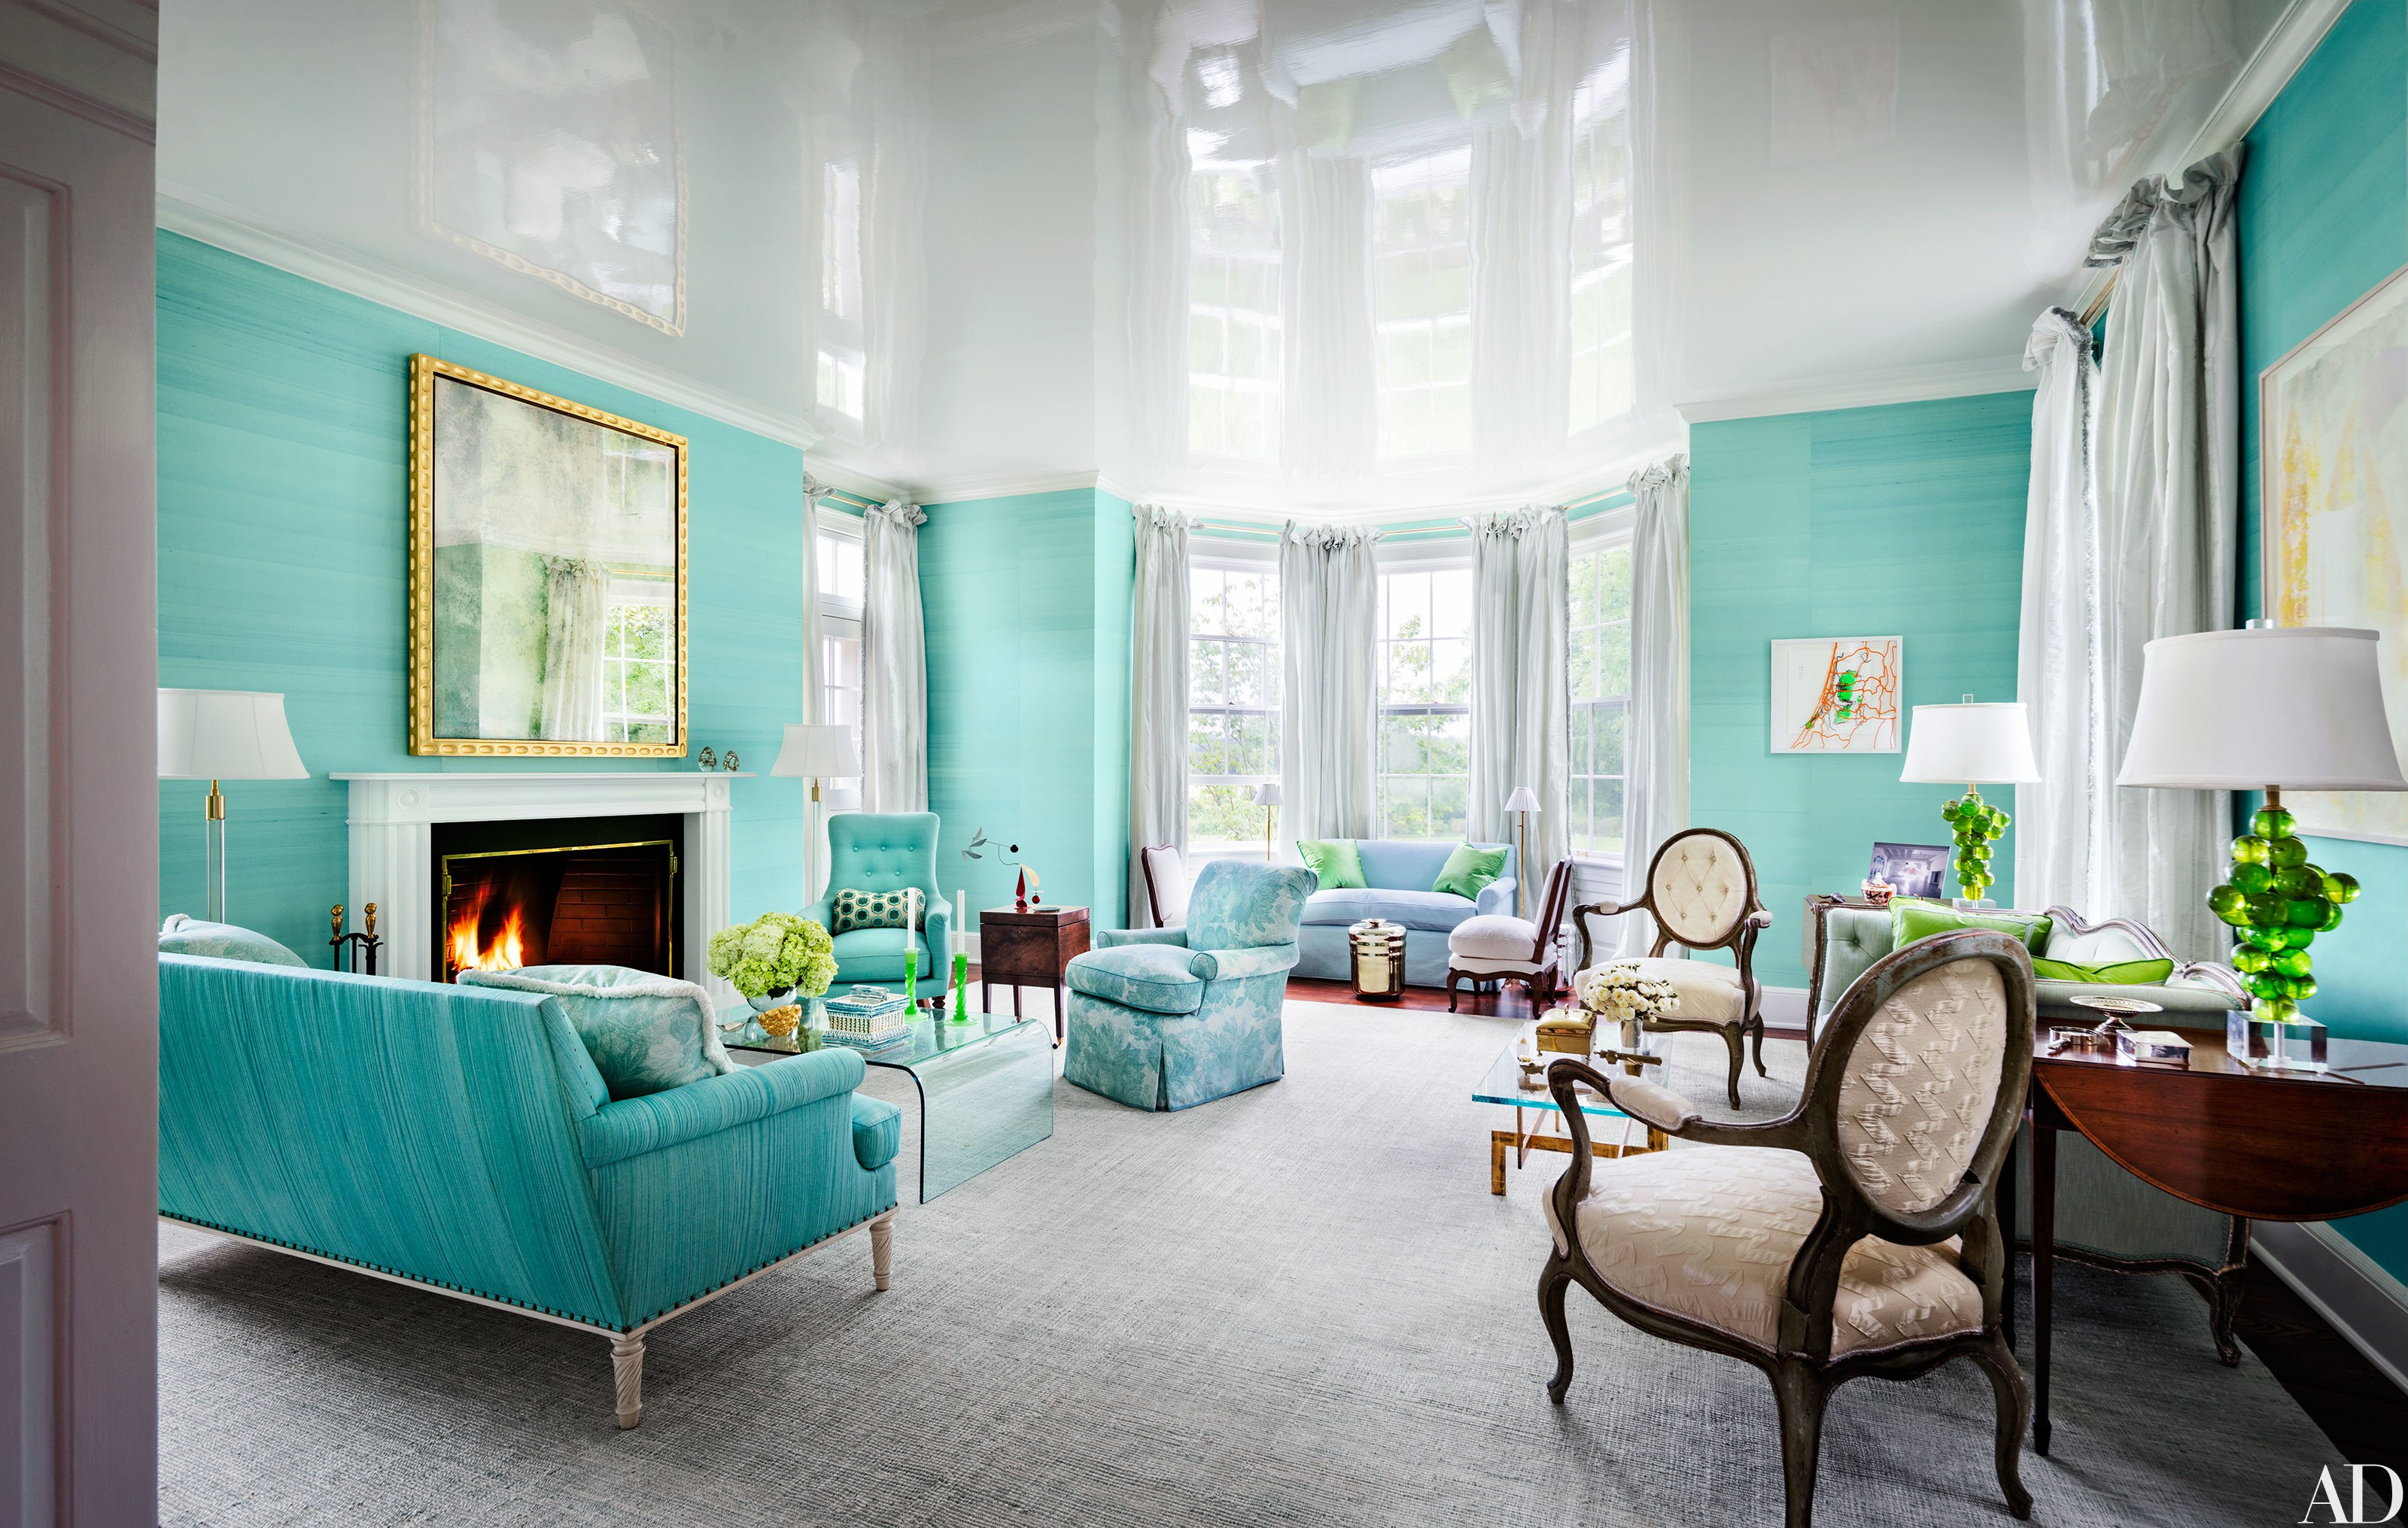 Captivating Green And Turquoise Decor Of Spaces For Jewel Tone Paint Color Inspiration Acnn Decor